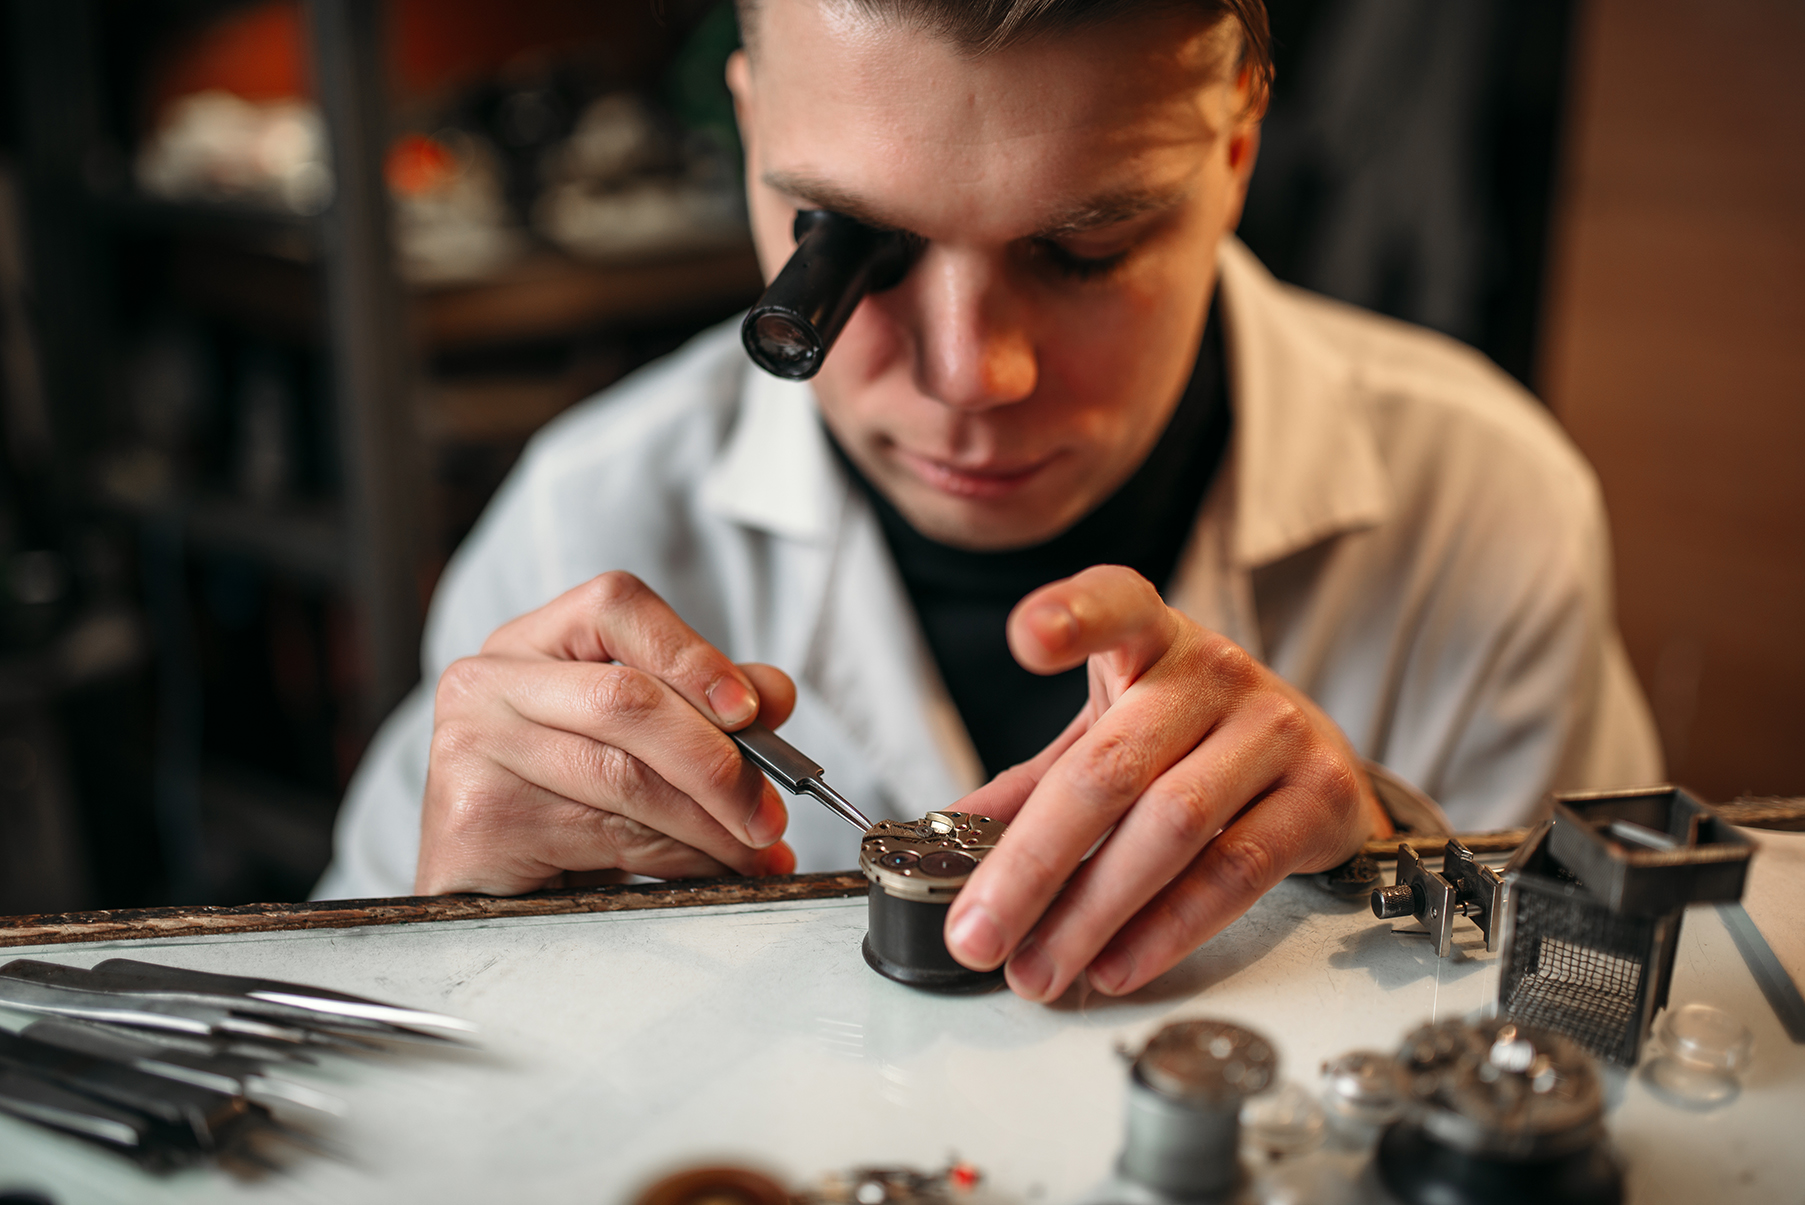 Clock maker repair old clockwork gear. Mechanical watches repairing